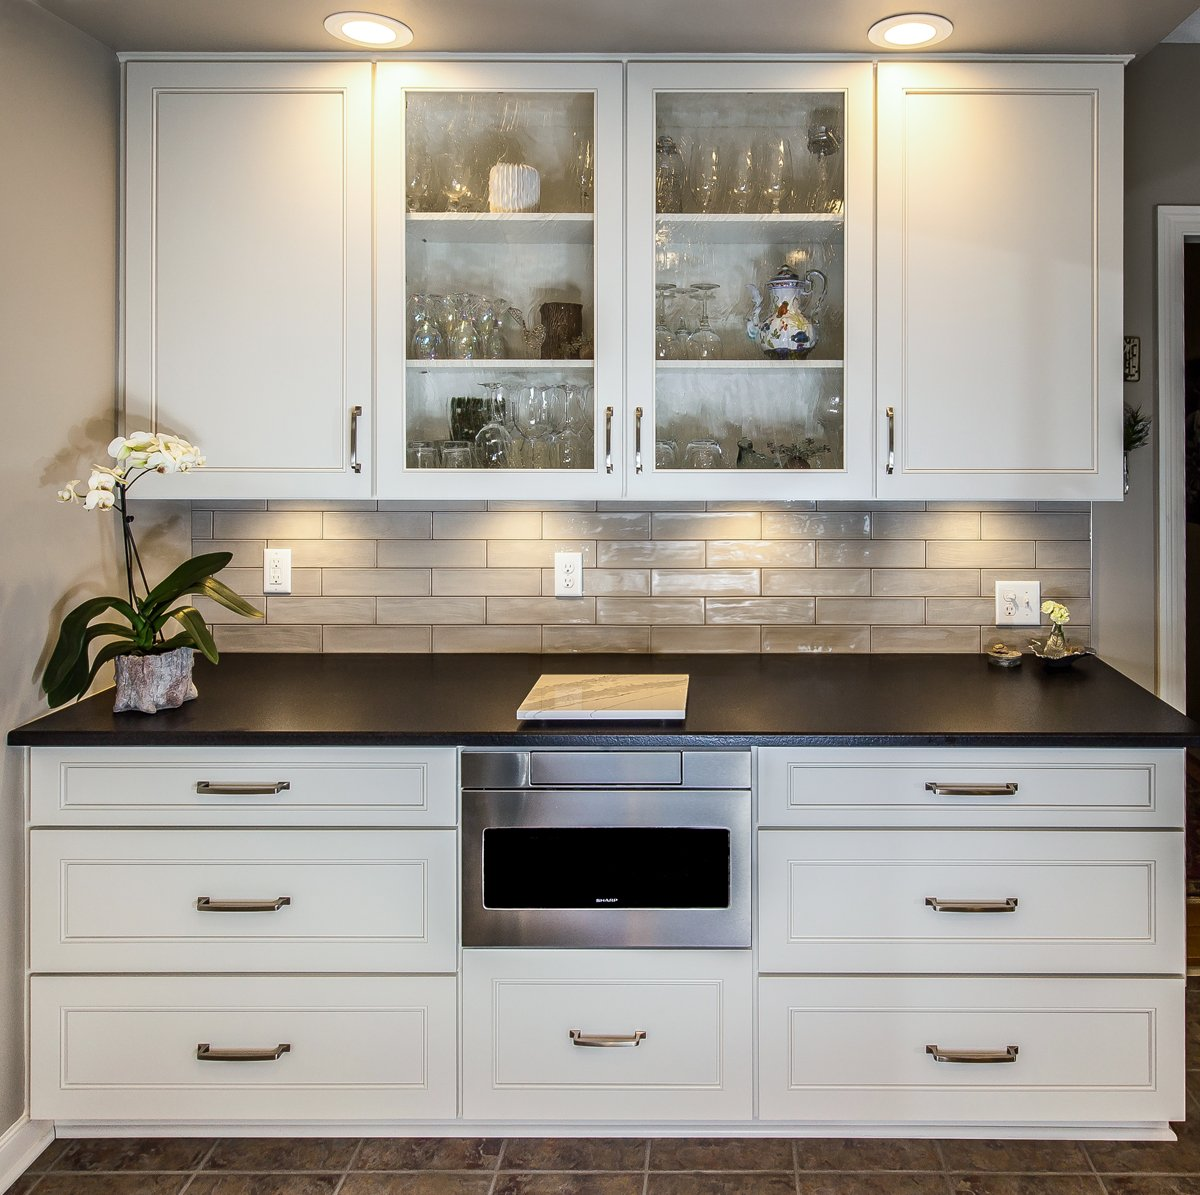 A set of white kitchen cabinets with a black countertop